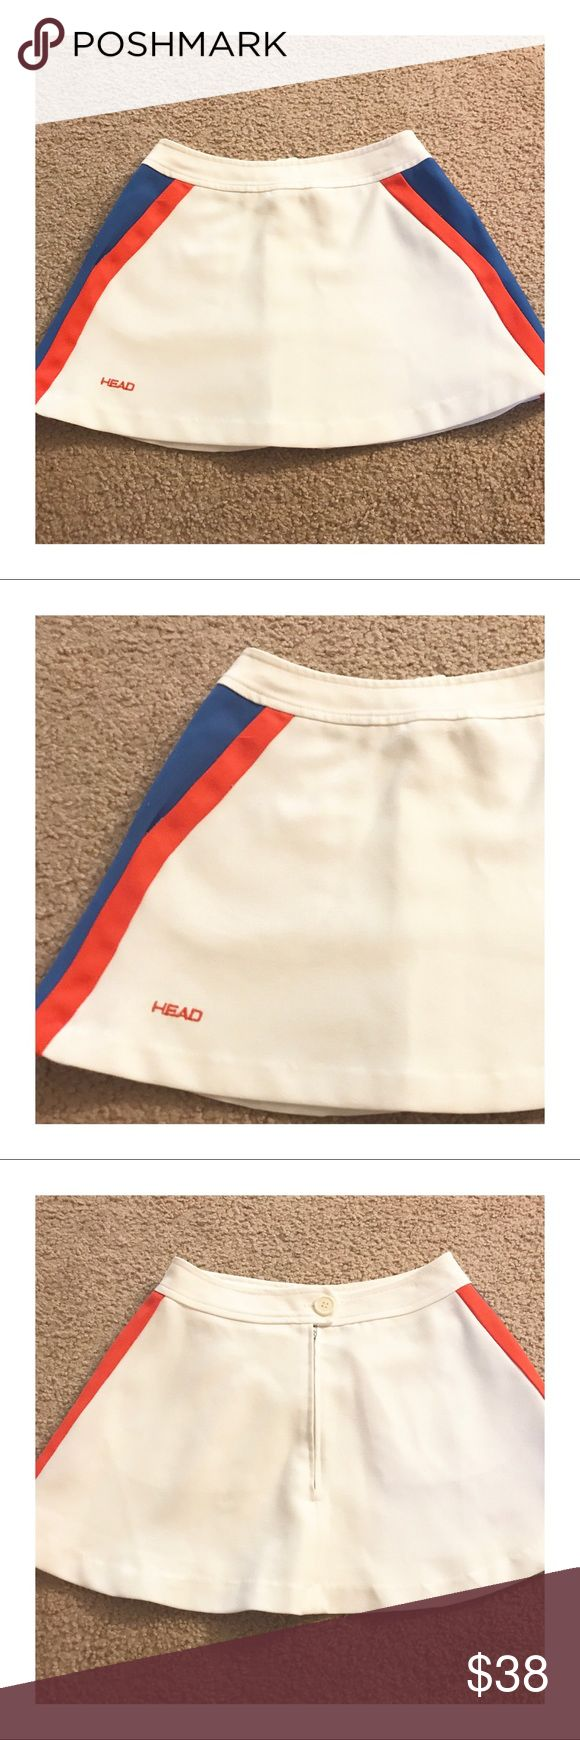 """1980's Super Mini Head Tennis Skirt!!! 😍 1980's Super Mini Head Tennis Skirt, Vintage Tennis Skirt by Head, Red, white & blue! 24"""" Waist, XS  Best tennis skirt in my collection!   Maybe! But probably :)  Straight outta the 1980's, this tennis skirt is totally legit. White with red and blue side stripes & closes in the back via plastic zip and one button  Fantastic condition as you can see  The waist measures 24"""" Length is an itty bitty 13"""" 🐯 Head Skirts Mini"""